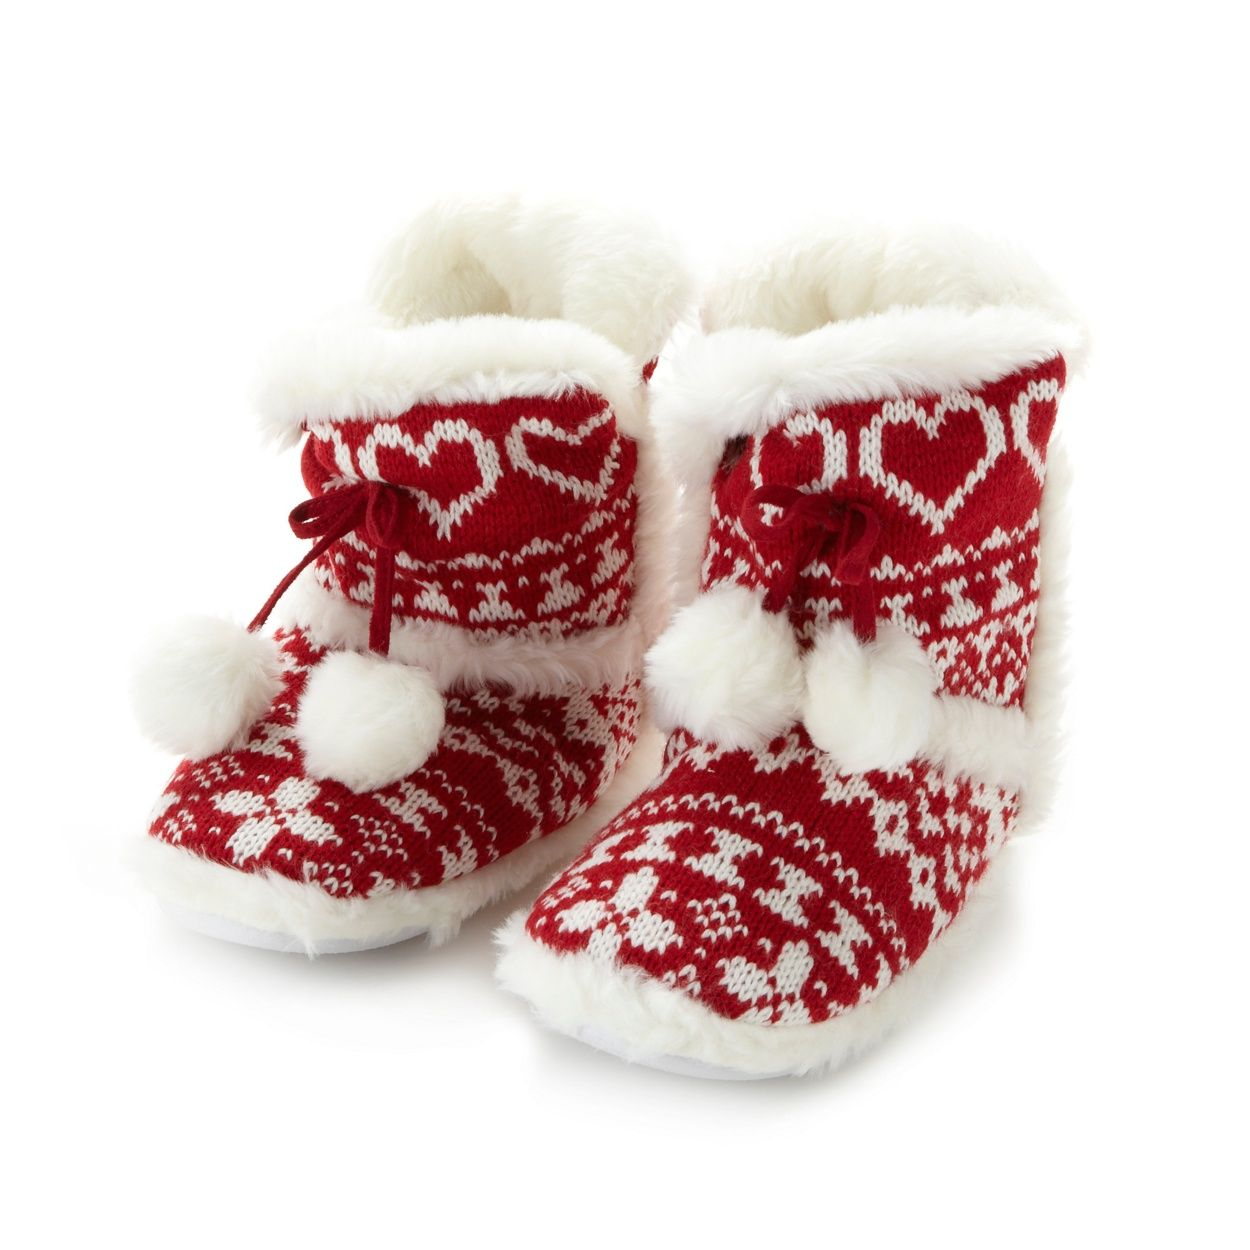 Slipper boots, Knitted slippers